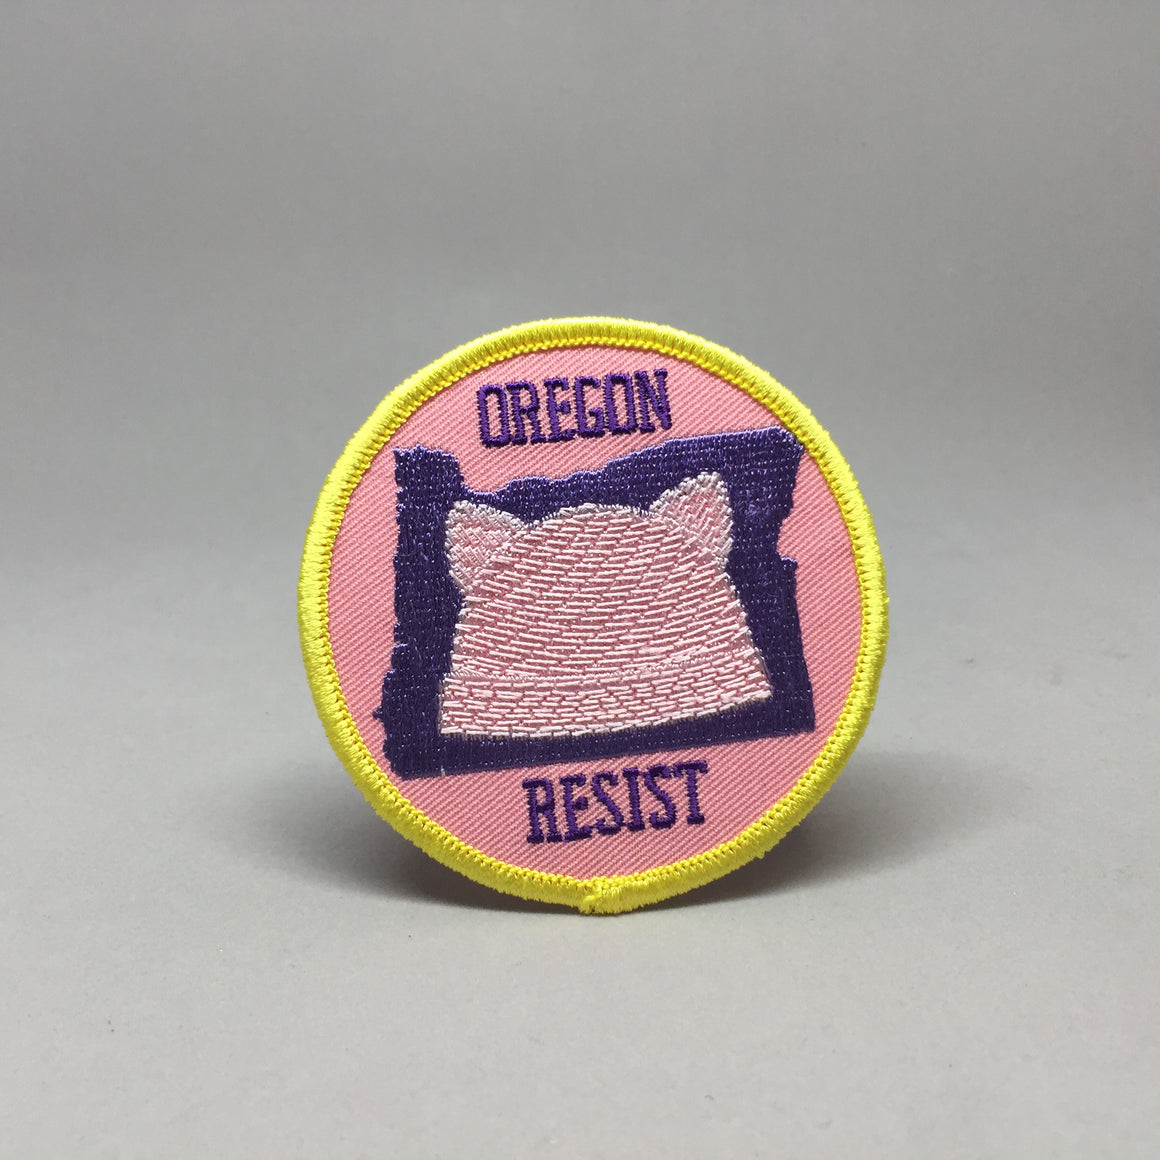 OREGON RESIST Patch